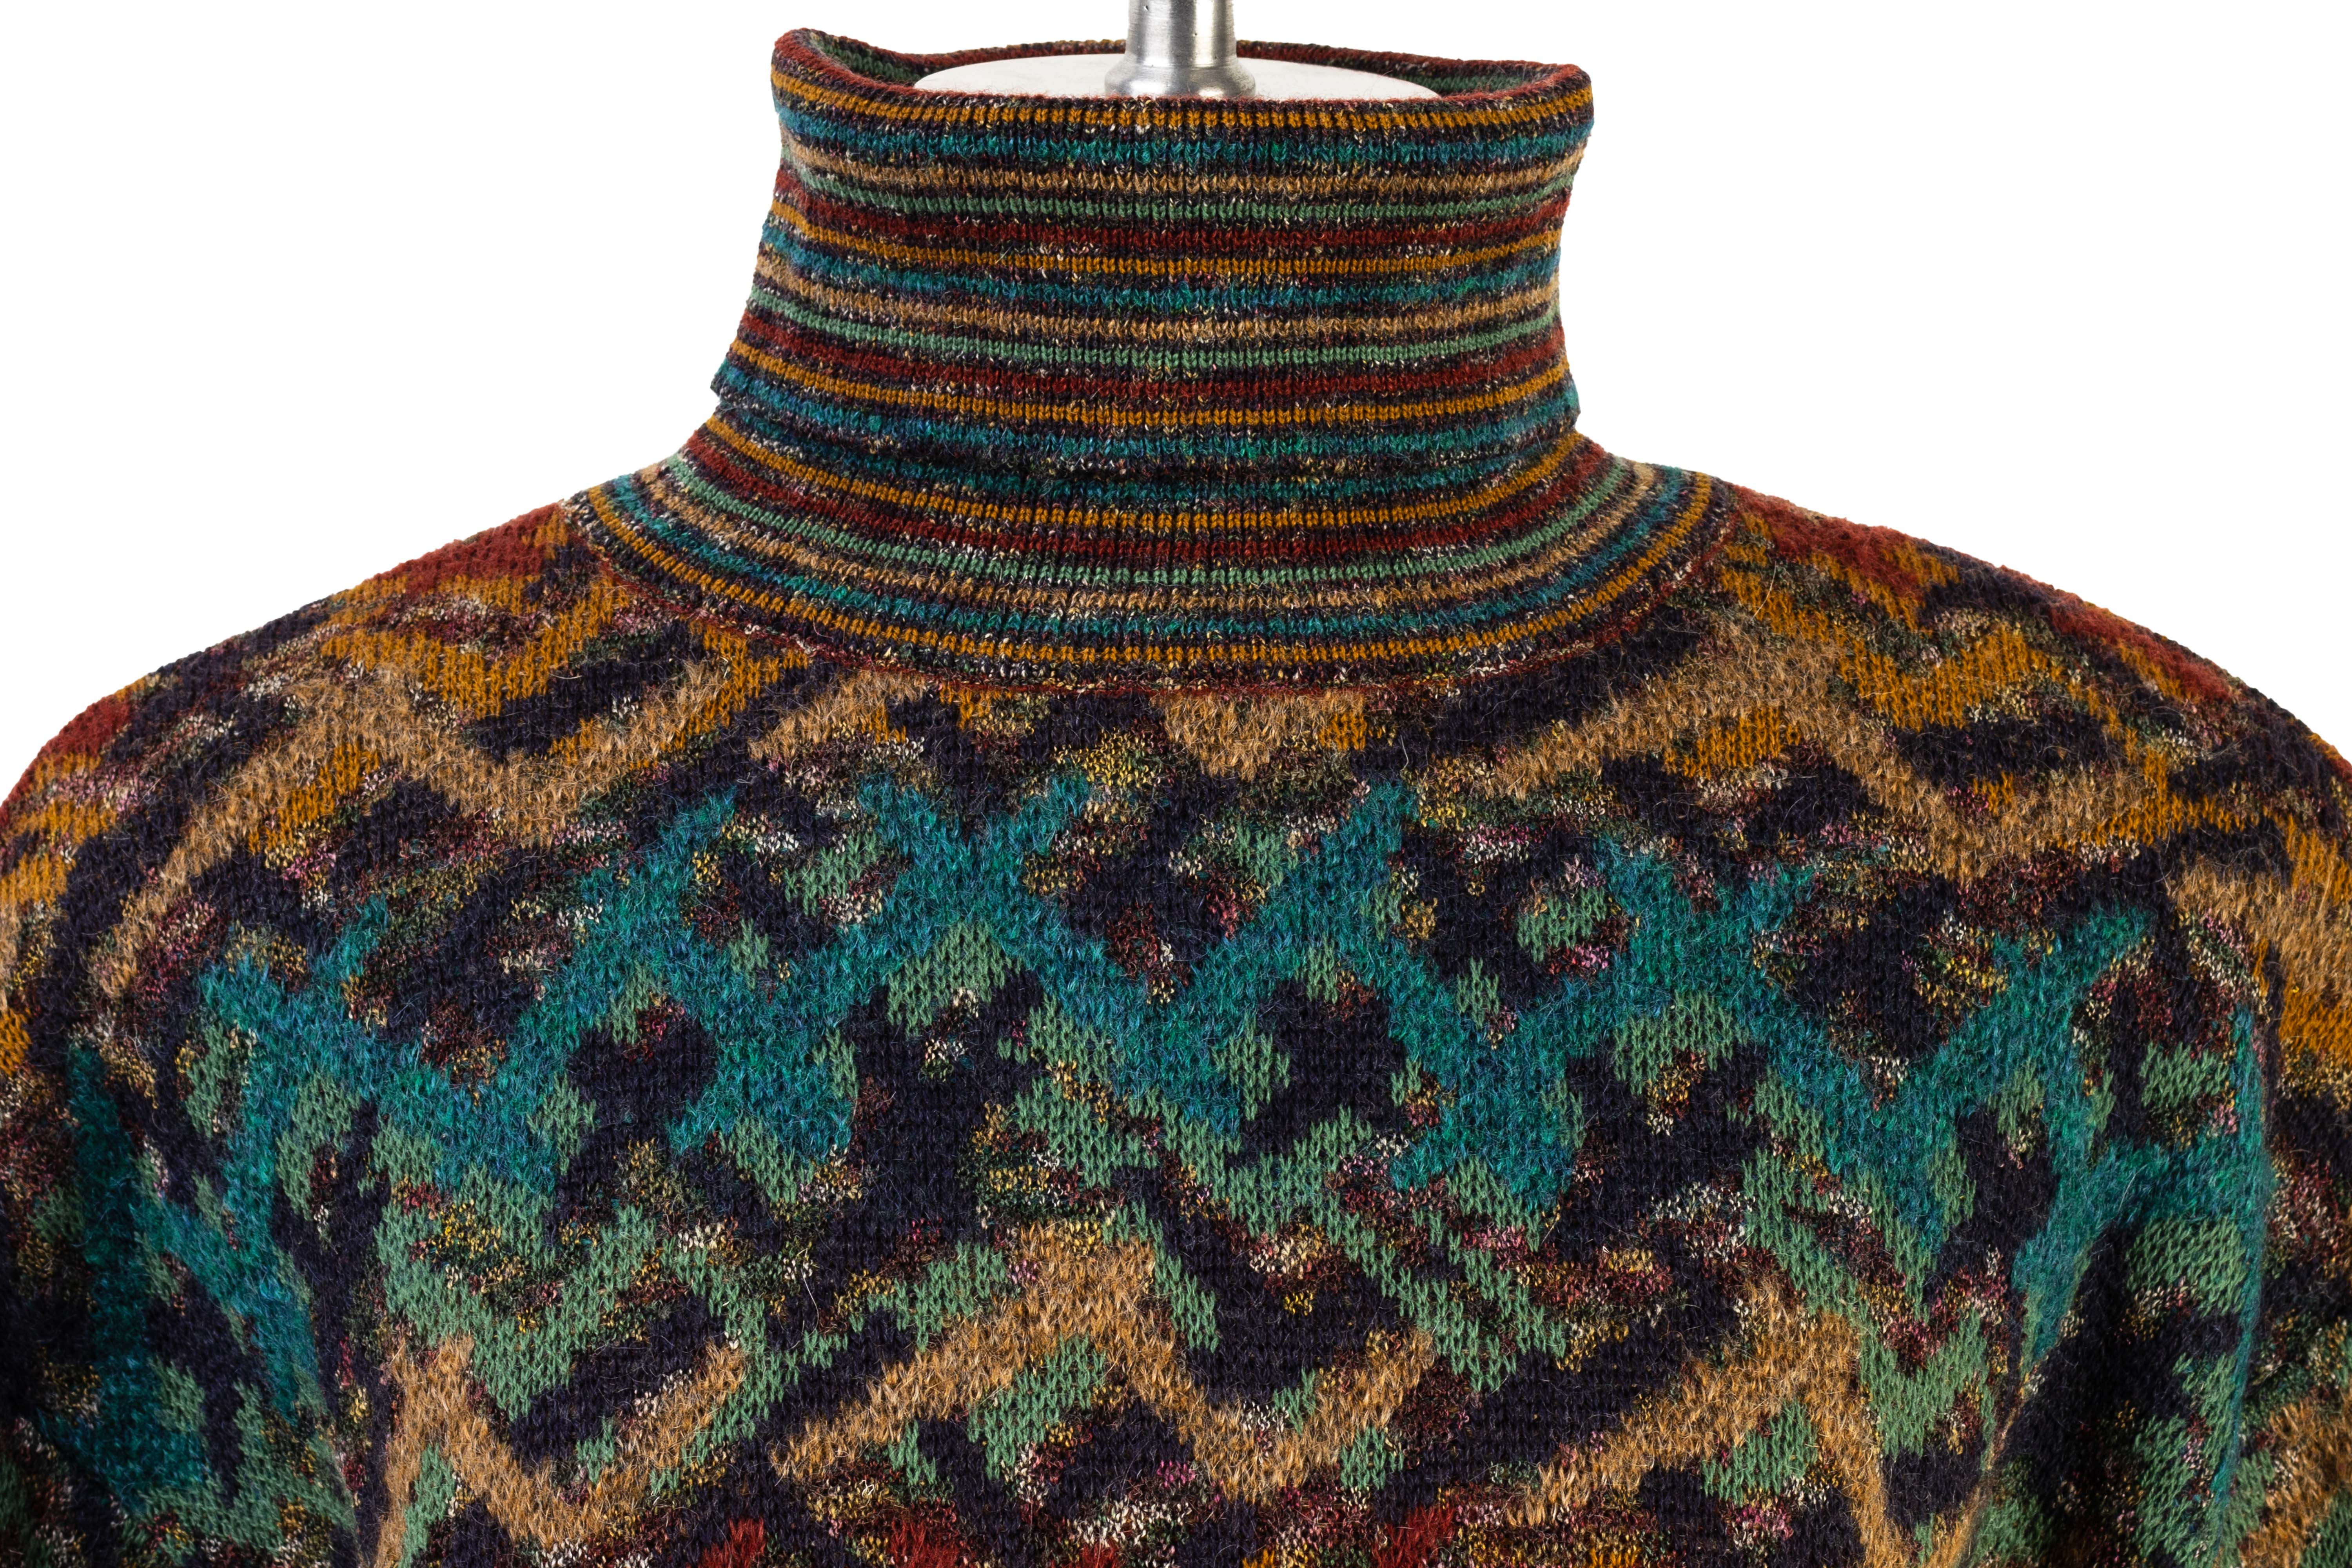 A MISSONI SPORT KNITTED ROLLNECK SWEATER - Image 2 of 4